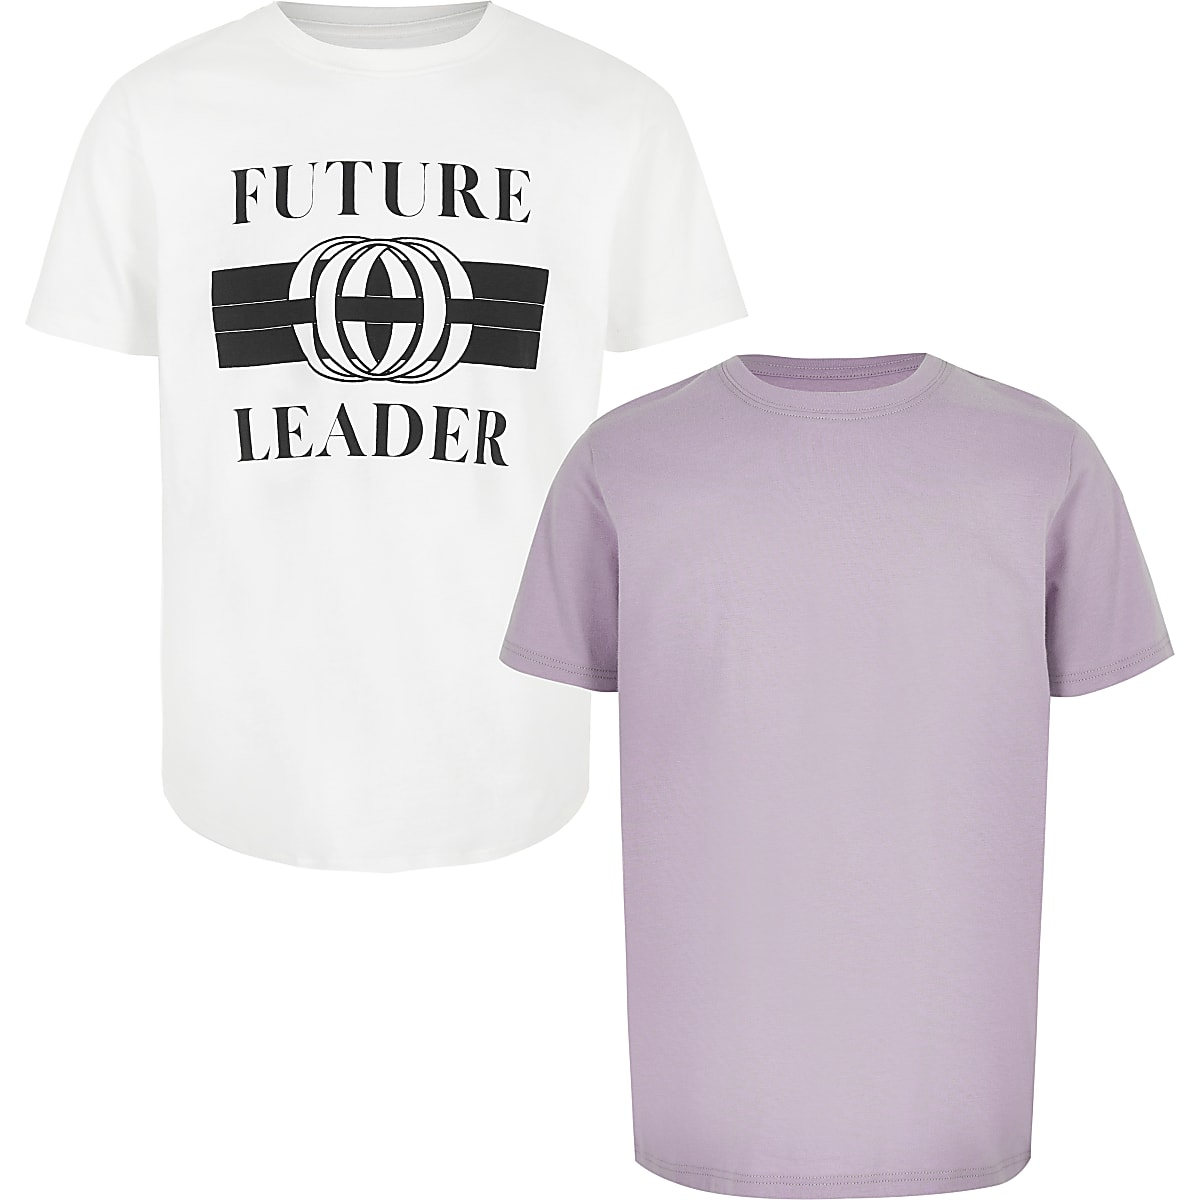 Boys 'Future leader' print T-shirt multipack